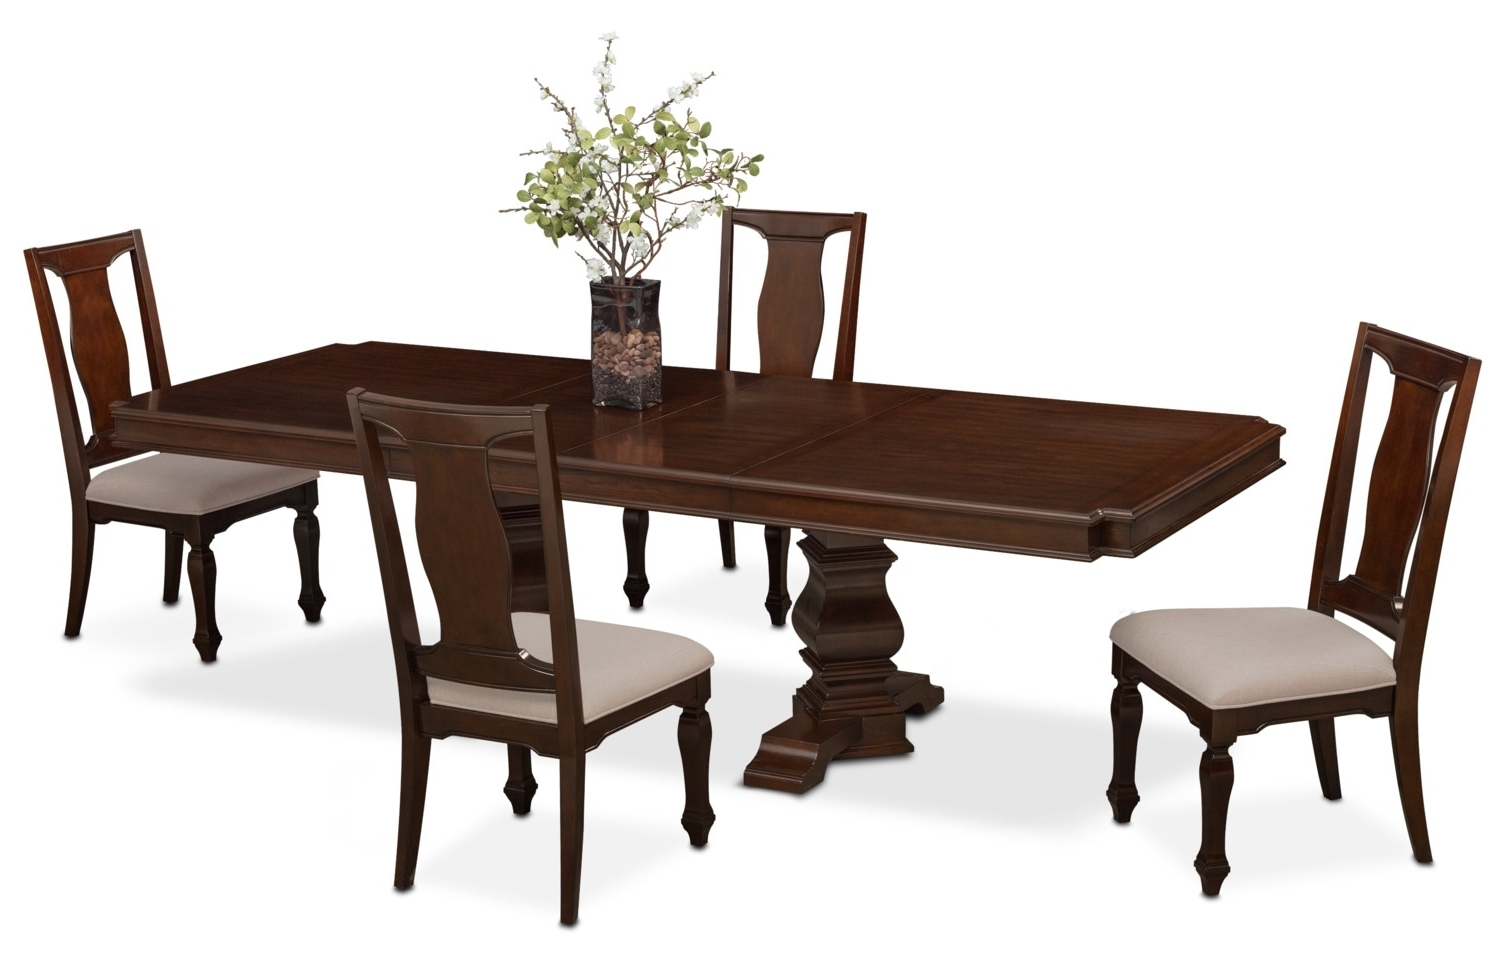 Vienna Dining Tables With Regard To Most Popular Vienna Rectangular Dining Table And 4 Side Chairs – Merlot (Gallery 11 of 25)